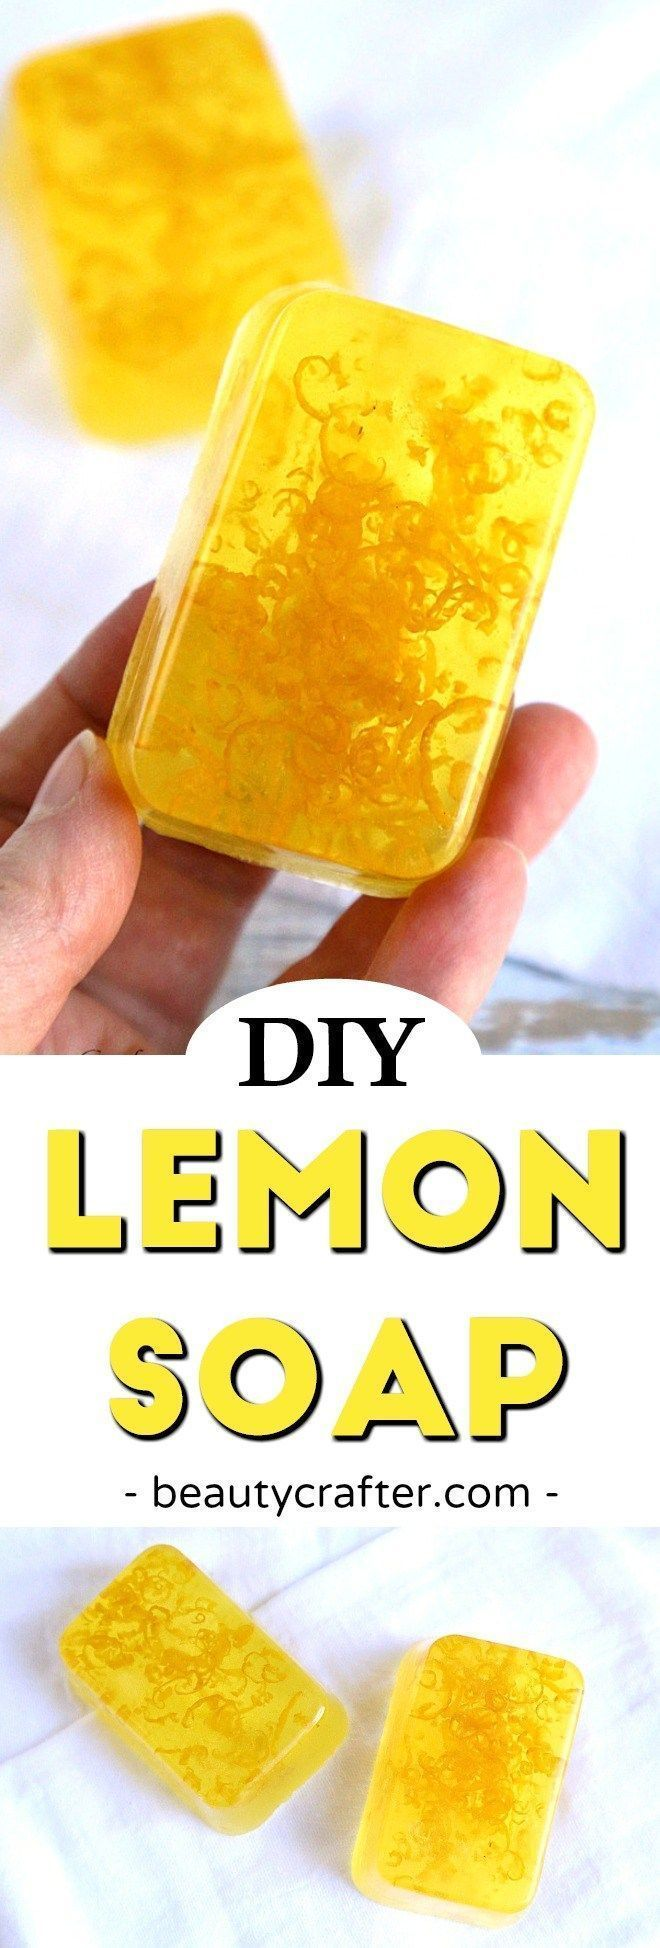 Lemon Soap - DIY Soap Recipe - Refreshing Lemon Zest soap makes a great DIY gift! #soap #soapmaking #crafts #diygifts #MothersDay #lemon #homemadesoap